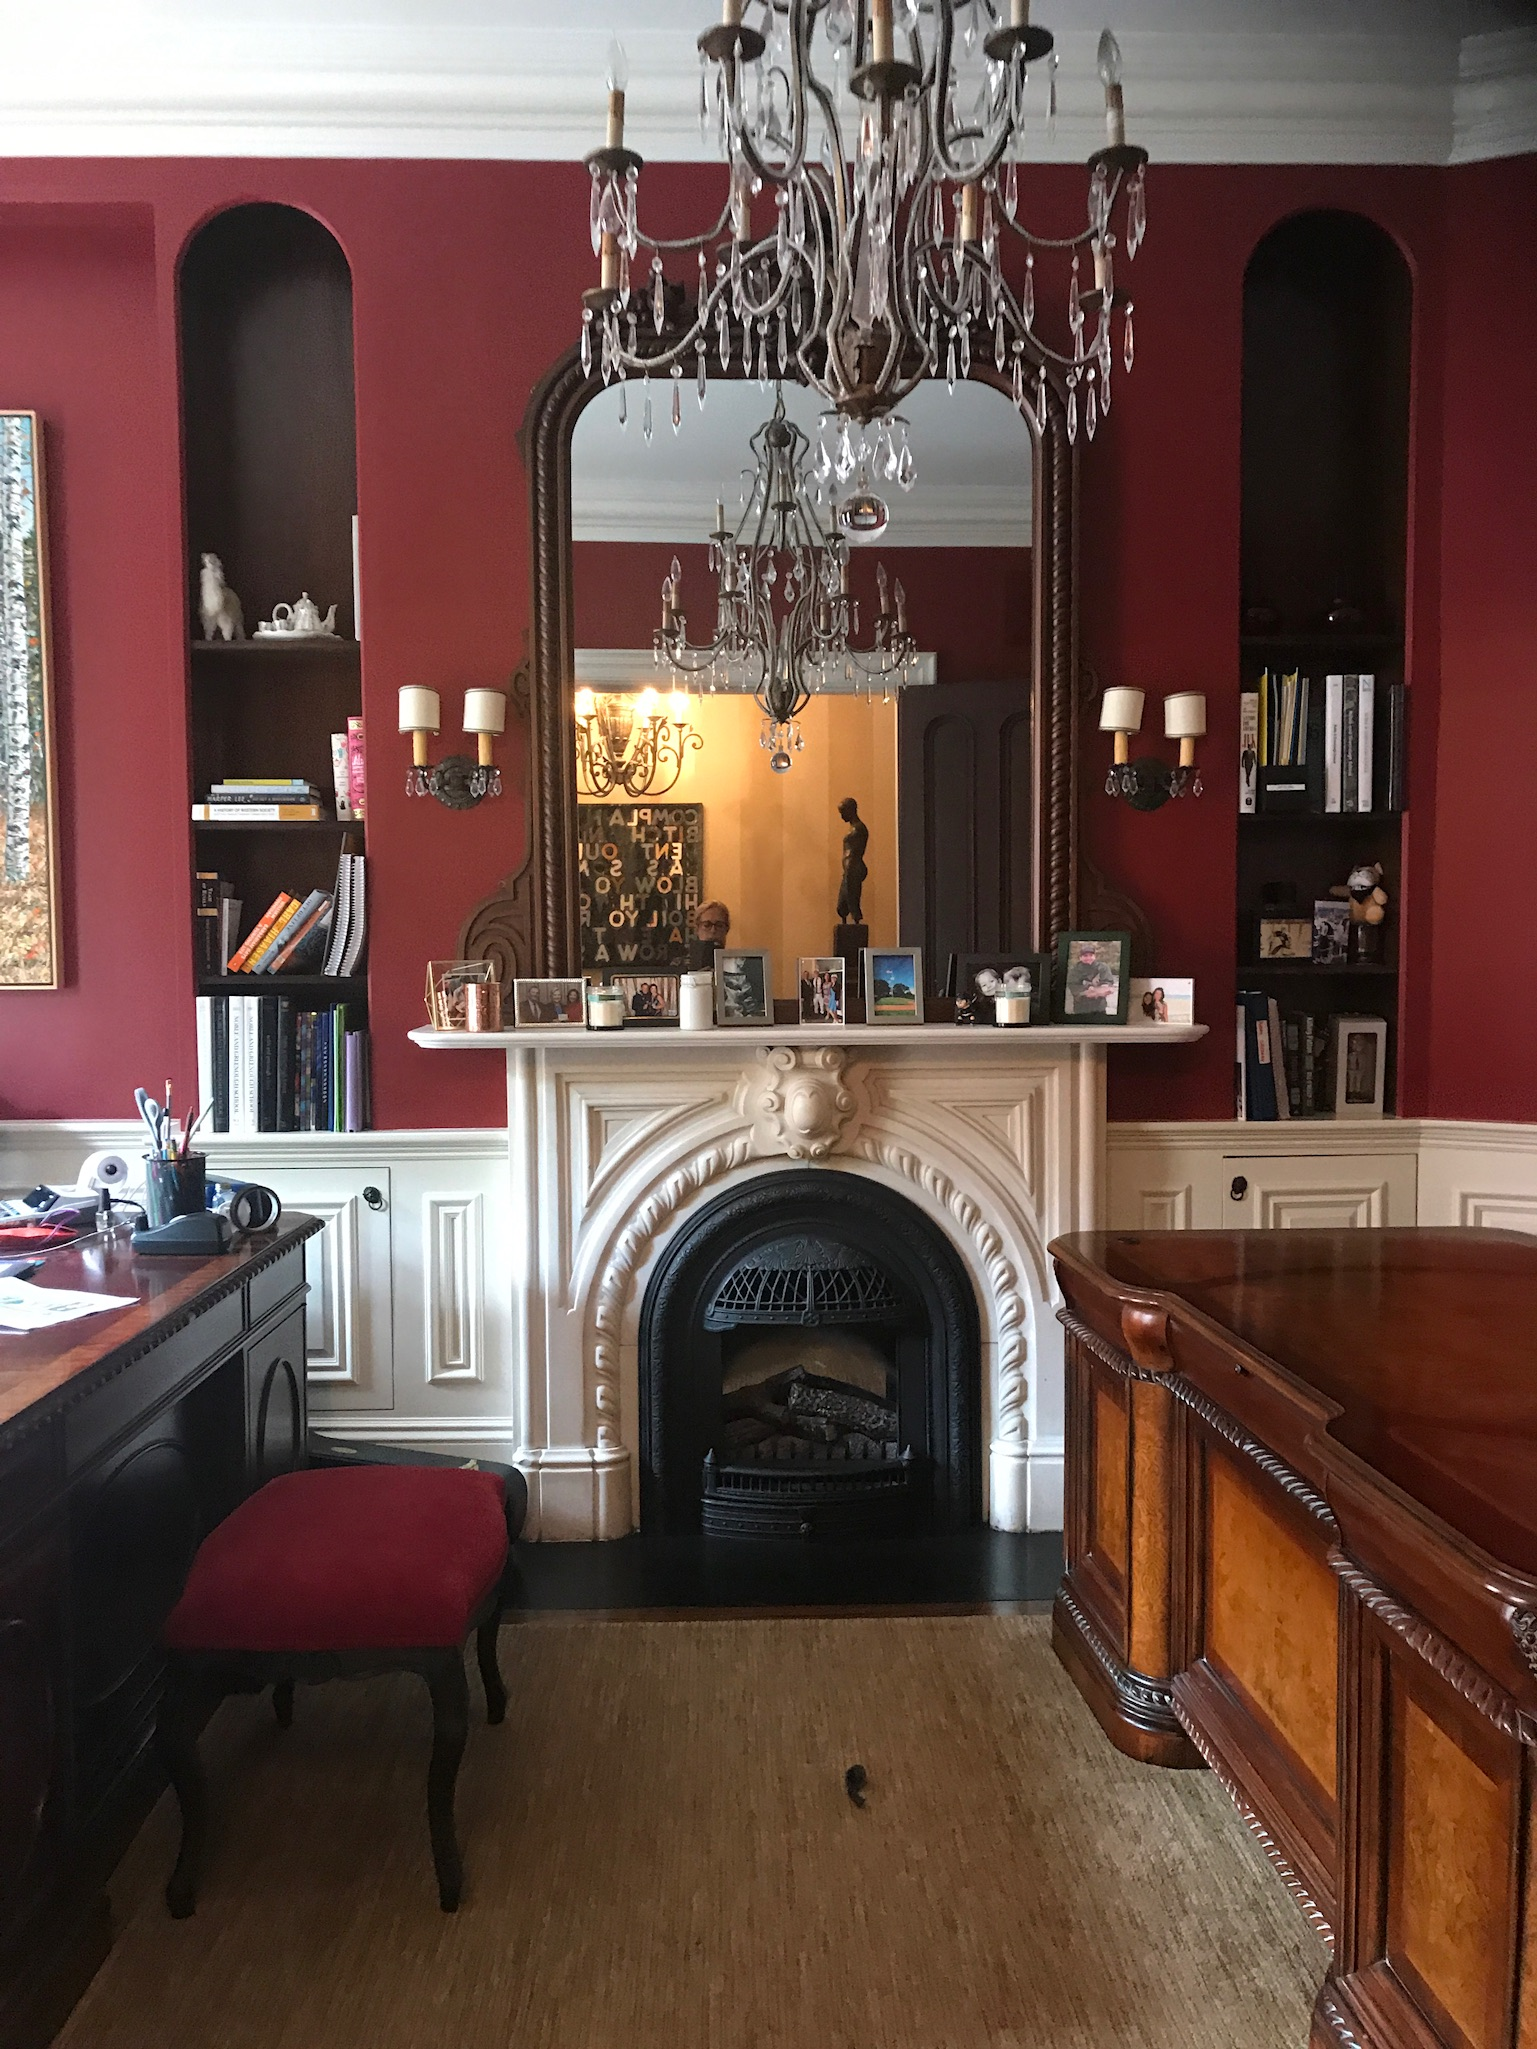 before-image-of-parlour-by-liz-caan-interior-design-TOWN-Renovation-and-design-in-the-city